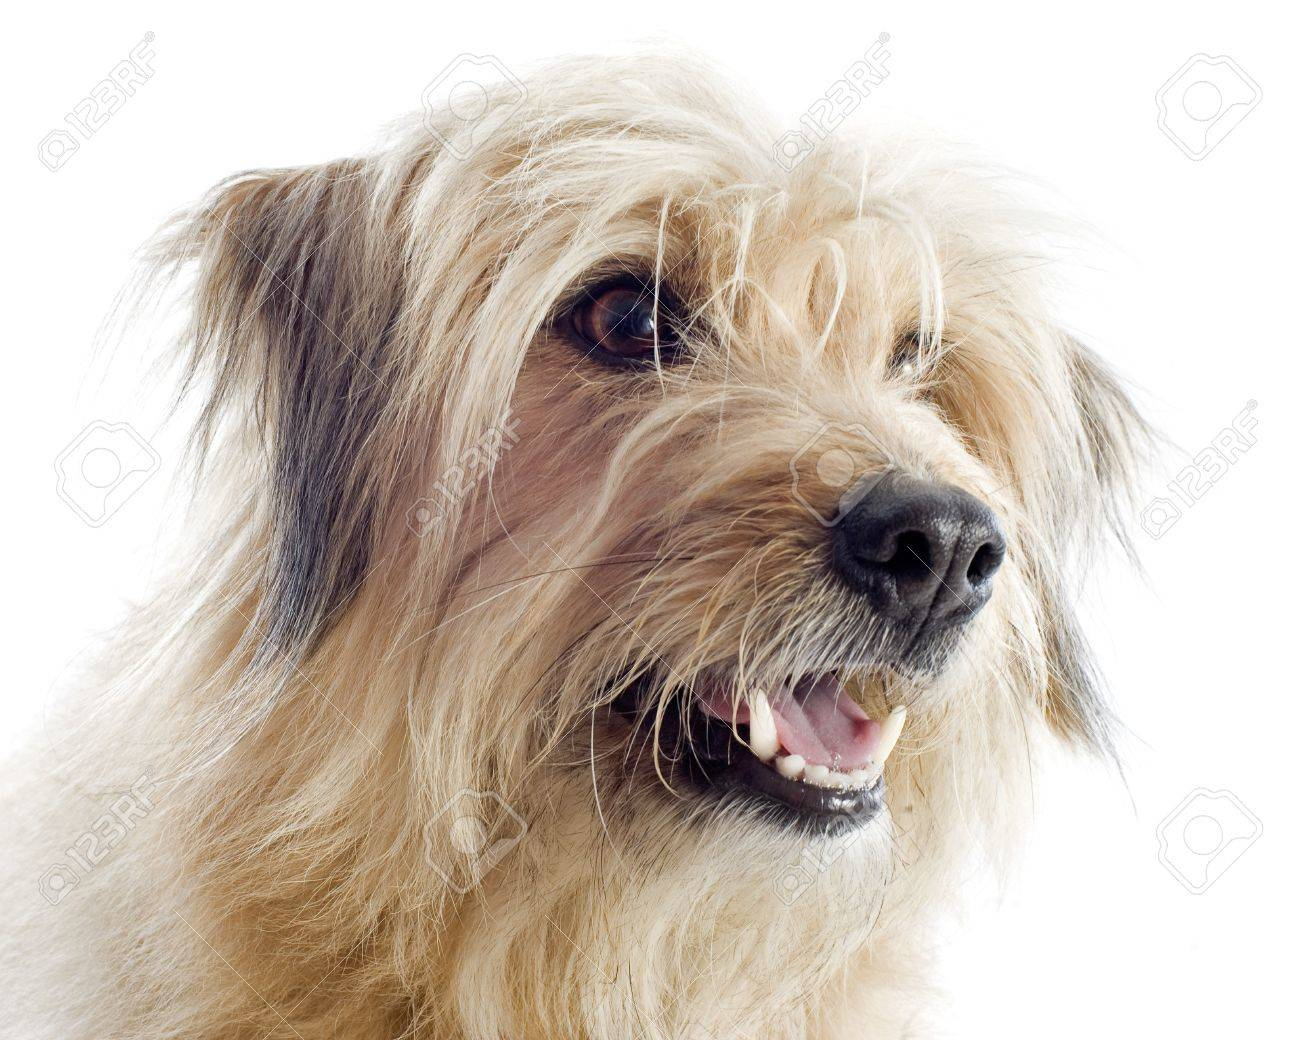 portrait of a pyrenean sheepdog in front of a white background Stock Photo - 15994063